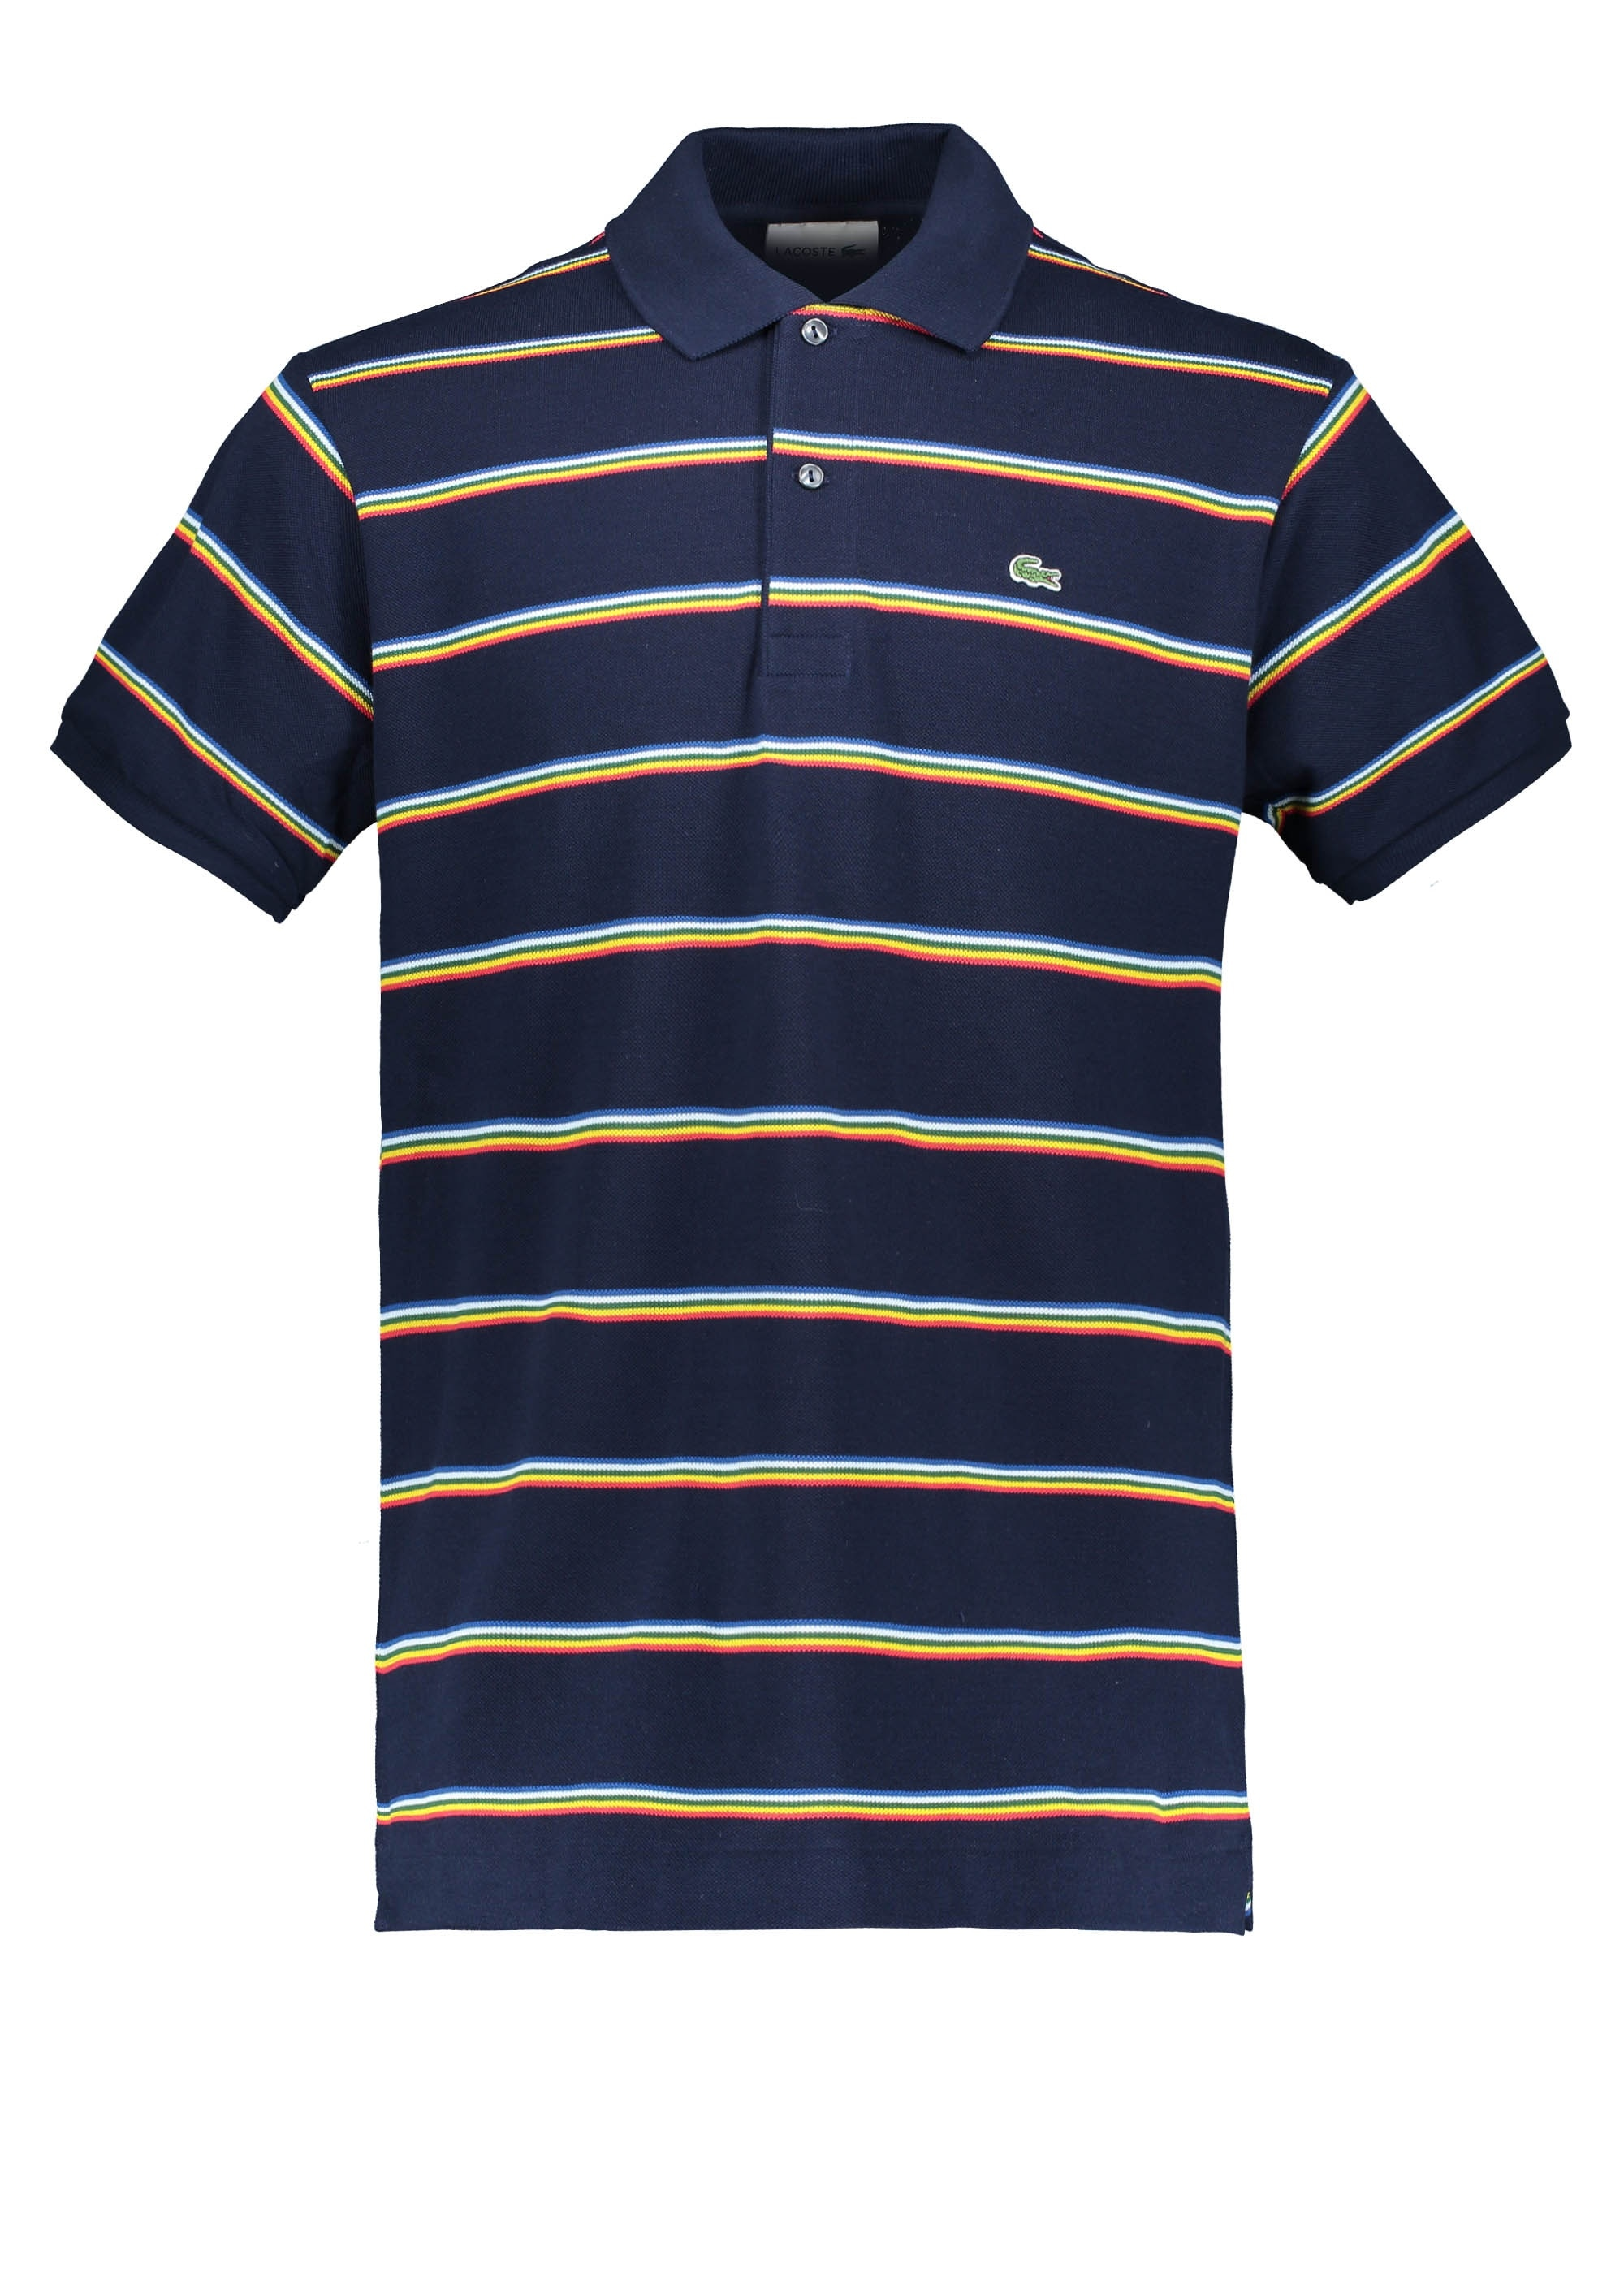 bc4ae1de9 Lacoste Stripe Polo - Navy Blue - Polo Shirts from Triads UK